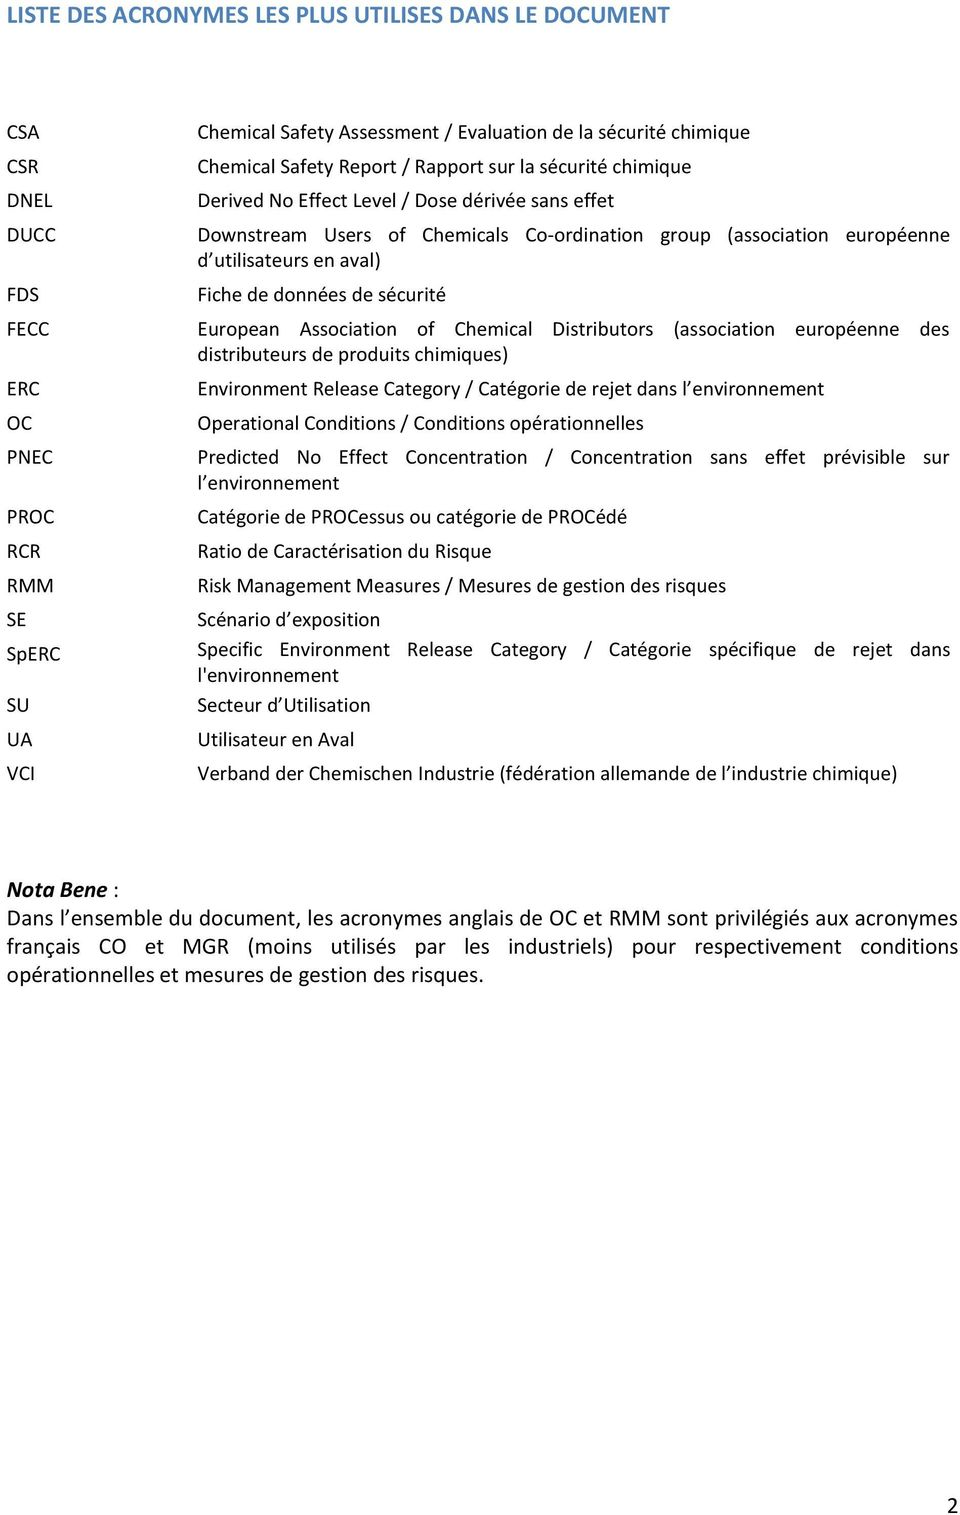 Association of Chemical Distributors (association européenne des distributeurs de produits chimiques) ERC OC PNEC PROC RCR RMM SE SpERC SU UA VCI Environment Release Category / Catégorie de rejet